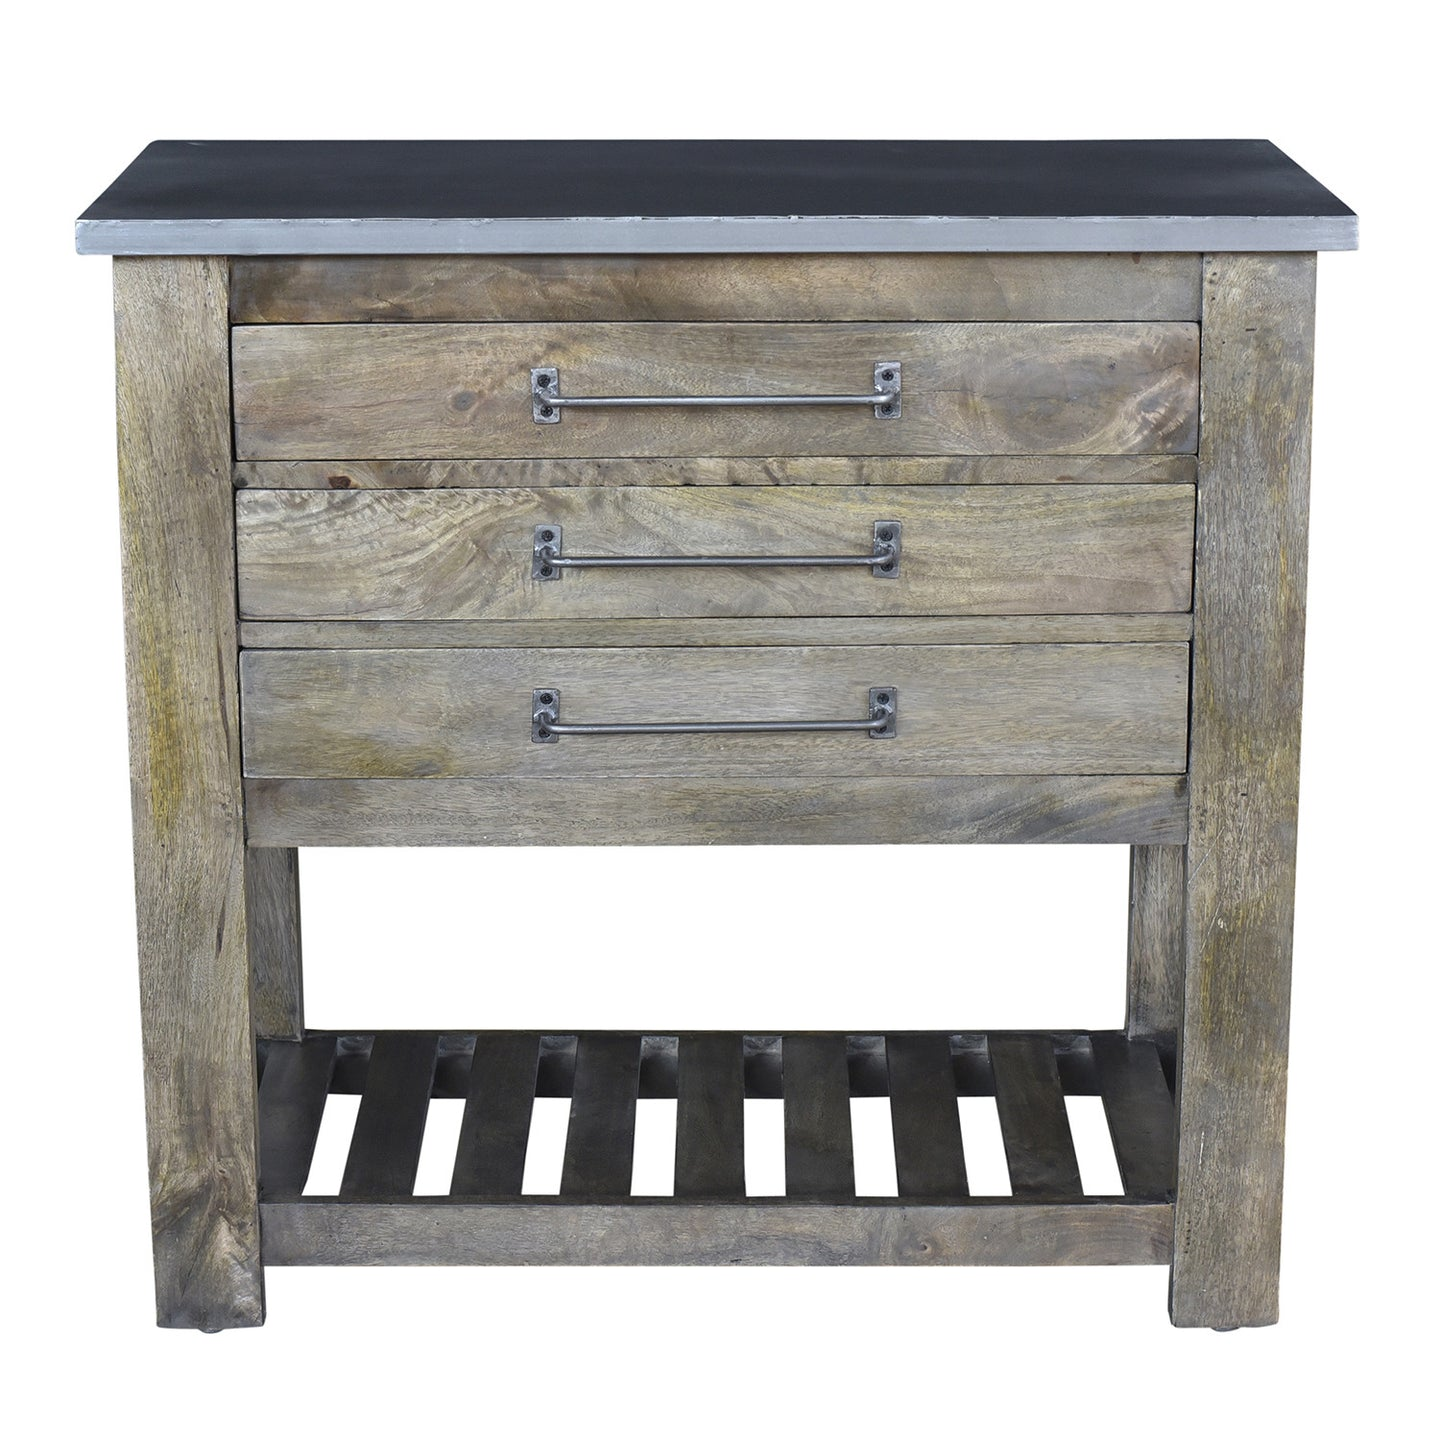 Bengal Manor Mango Wood 3 Drawer Charcoal Grey Chest W/ Metal Top By Crestview Collection Cvfnr326